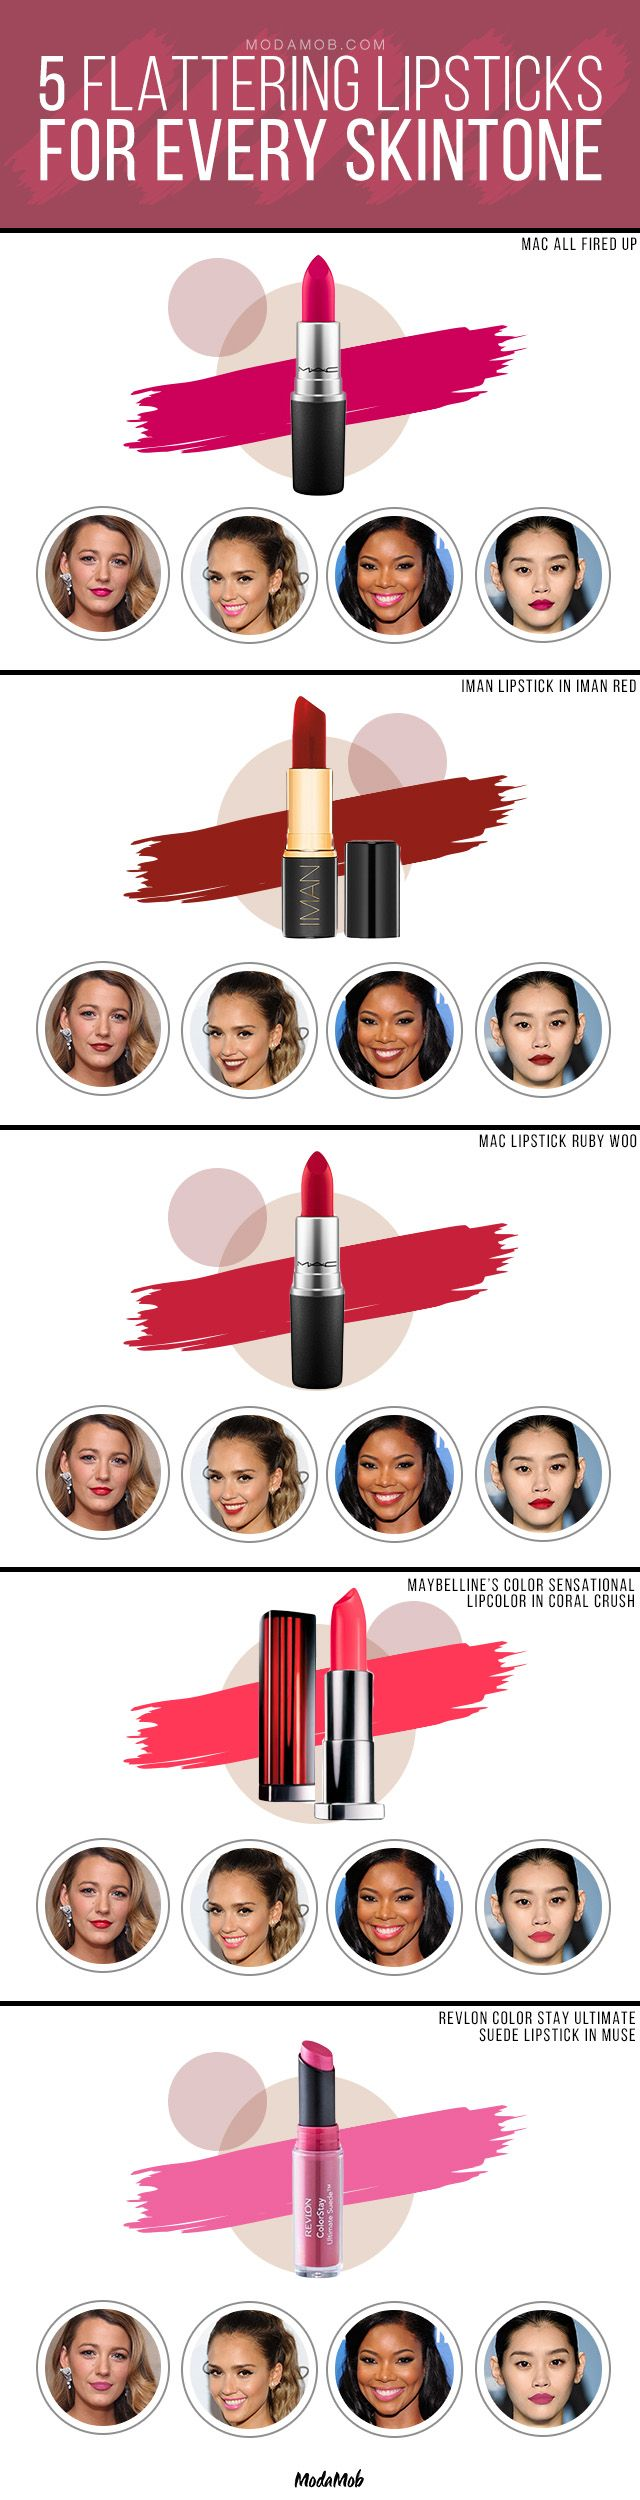 5 Flattering Lipsticks That Work For Every Skin Tone | MAC All Fired Up, Iman Lipstick in Iman Red, MAC Lipstick Ruby Woo, Maybelline's Color Sensational Lipcolor in Coral Crush, Revlon Color Stay Ultimate Suede Lipstick in Muse